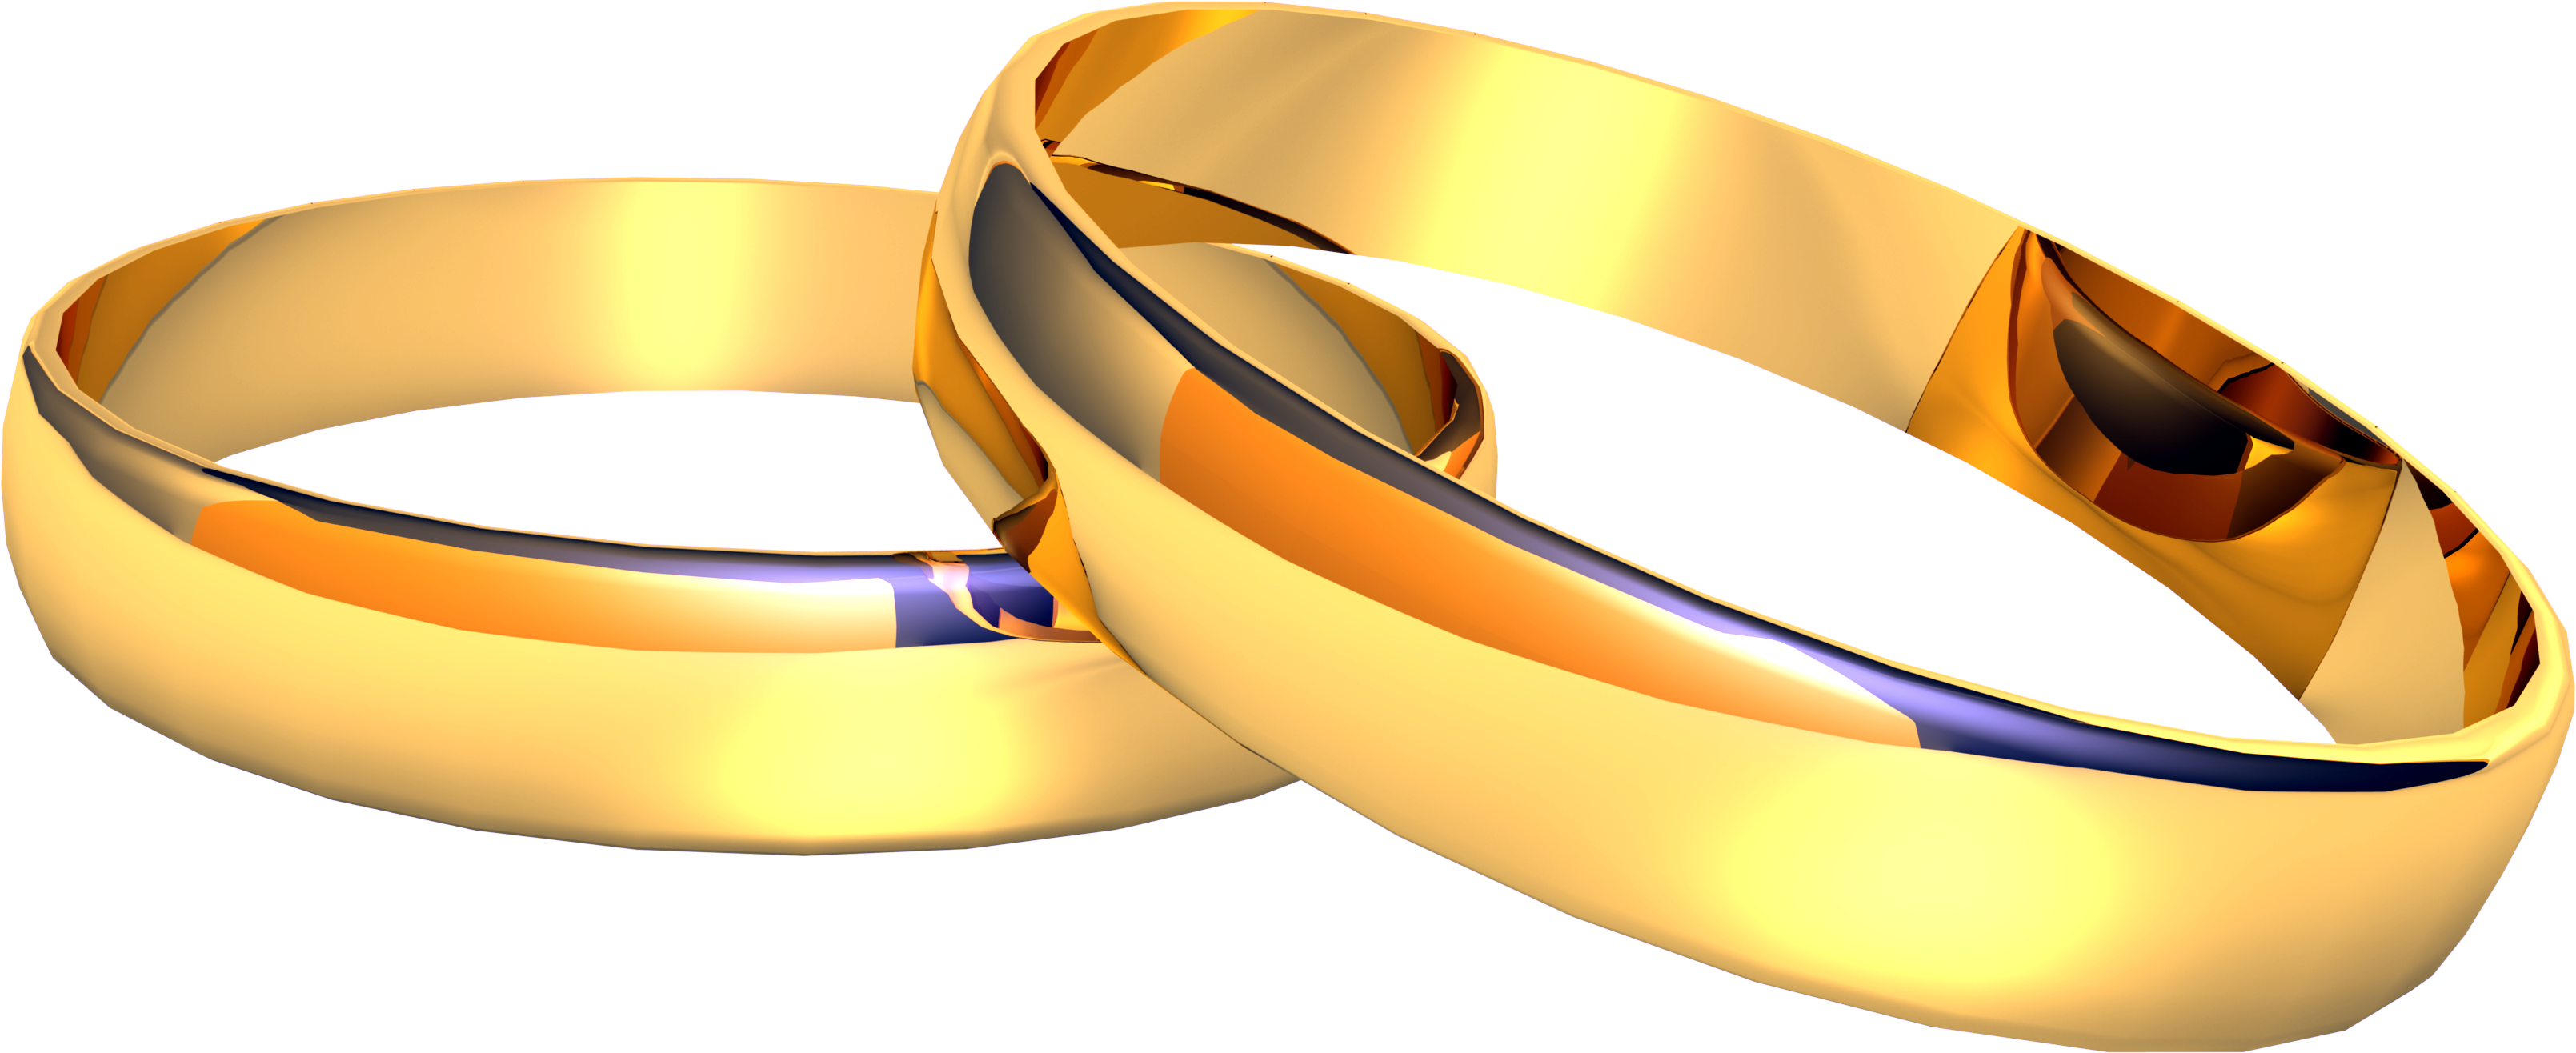 Wedding Ring Png.File Rings Png Wikipedia